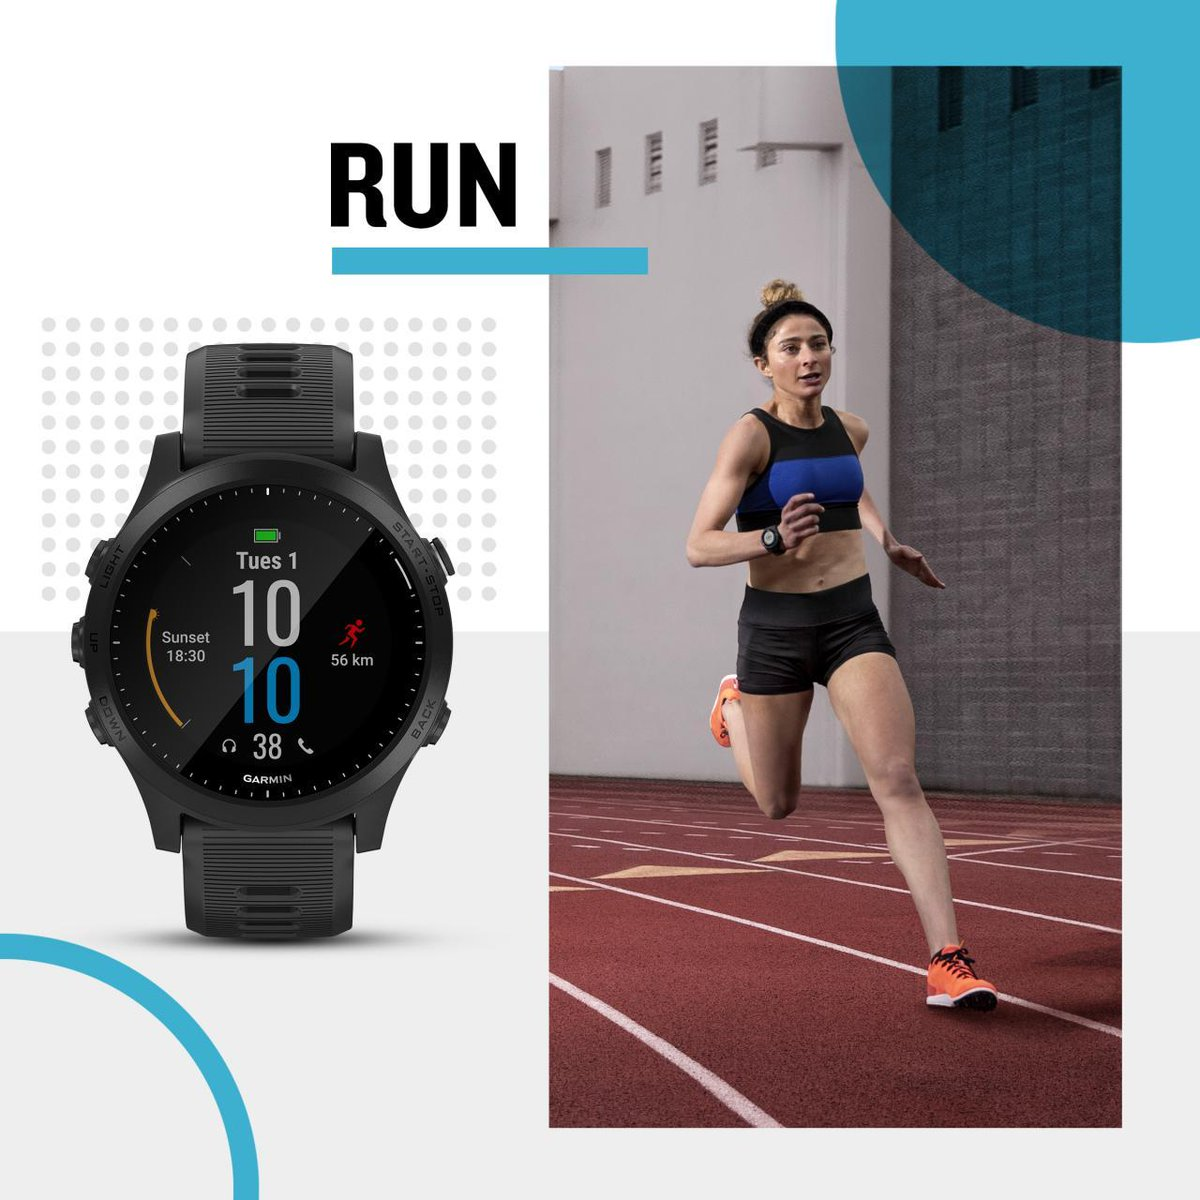 No two runners are the same, Forerunner 945 - The triathlon-friendly powerhouse , designed keeping in mind the best in class!  Featured Product Forerunner 945: https://t.co/7Z23zmhGu4   #LightToYourTraining #workout #fitness #RUN https://t.co/5ILoYtI4yB